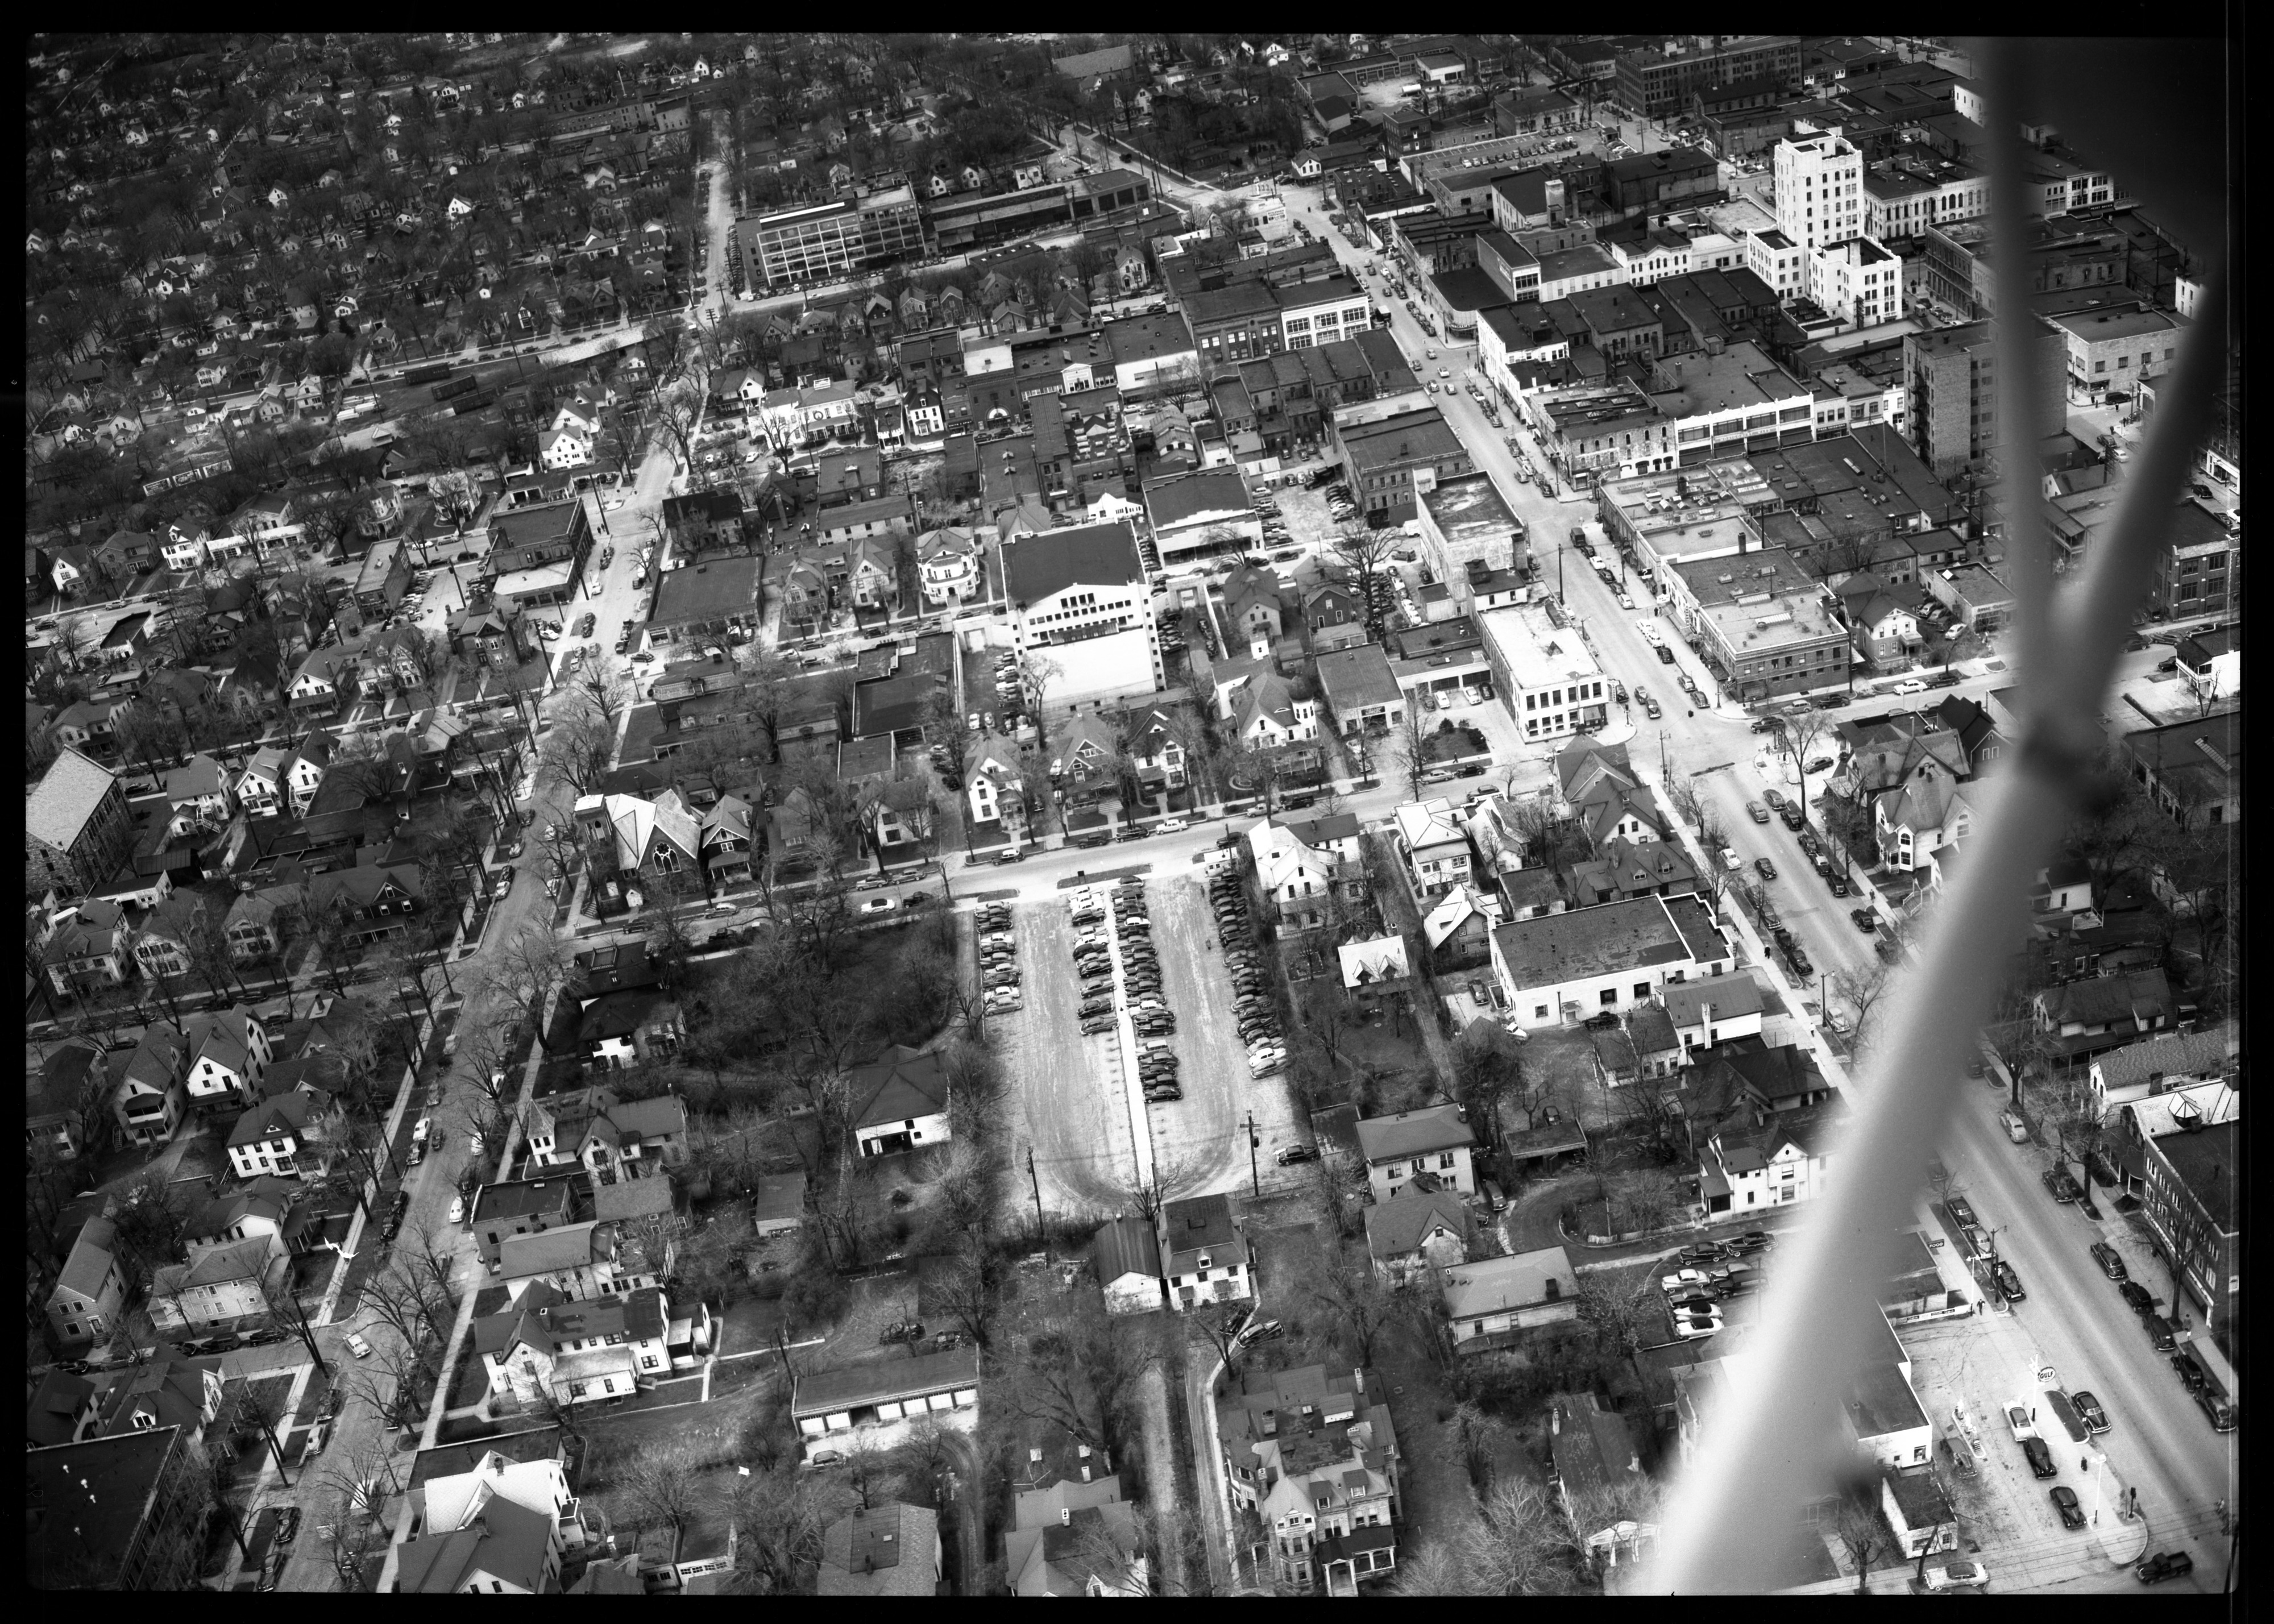 Aerial View of Downtown Ann Arbor, April 1950 image